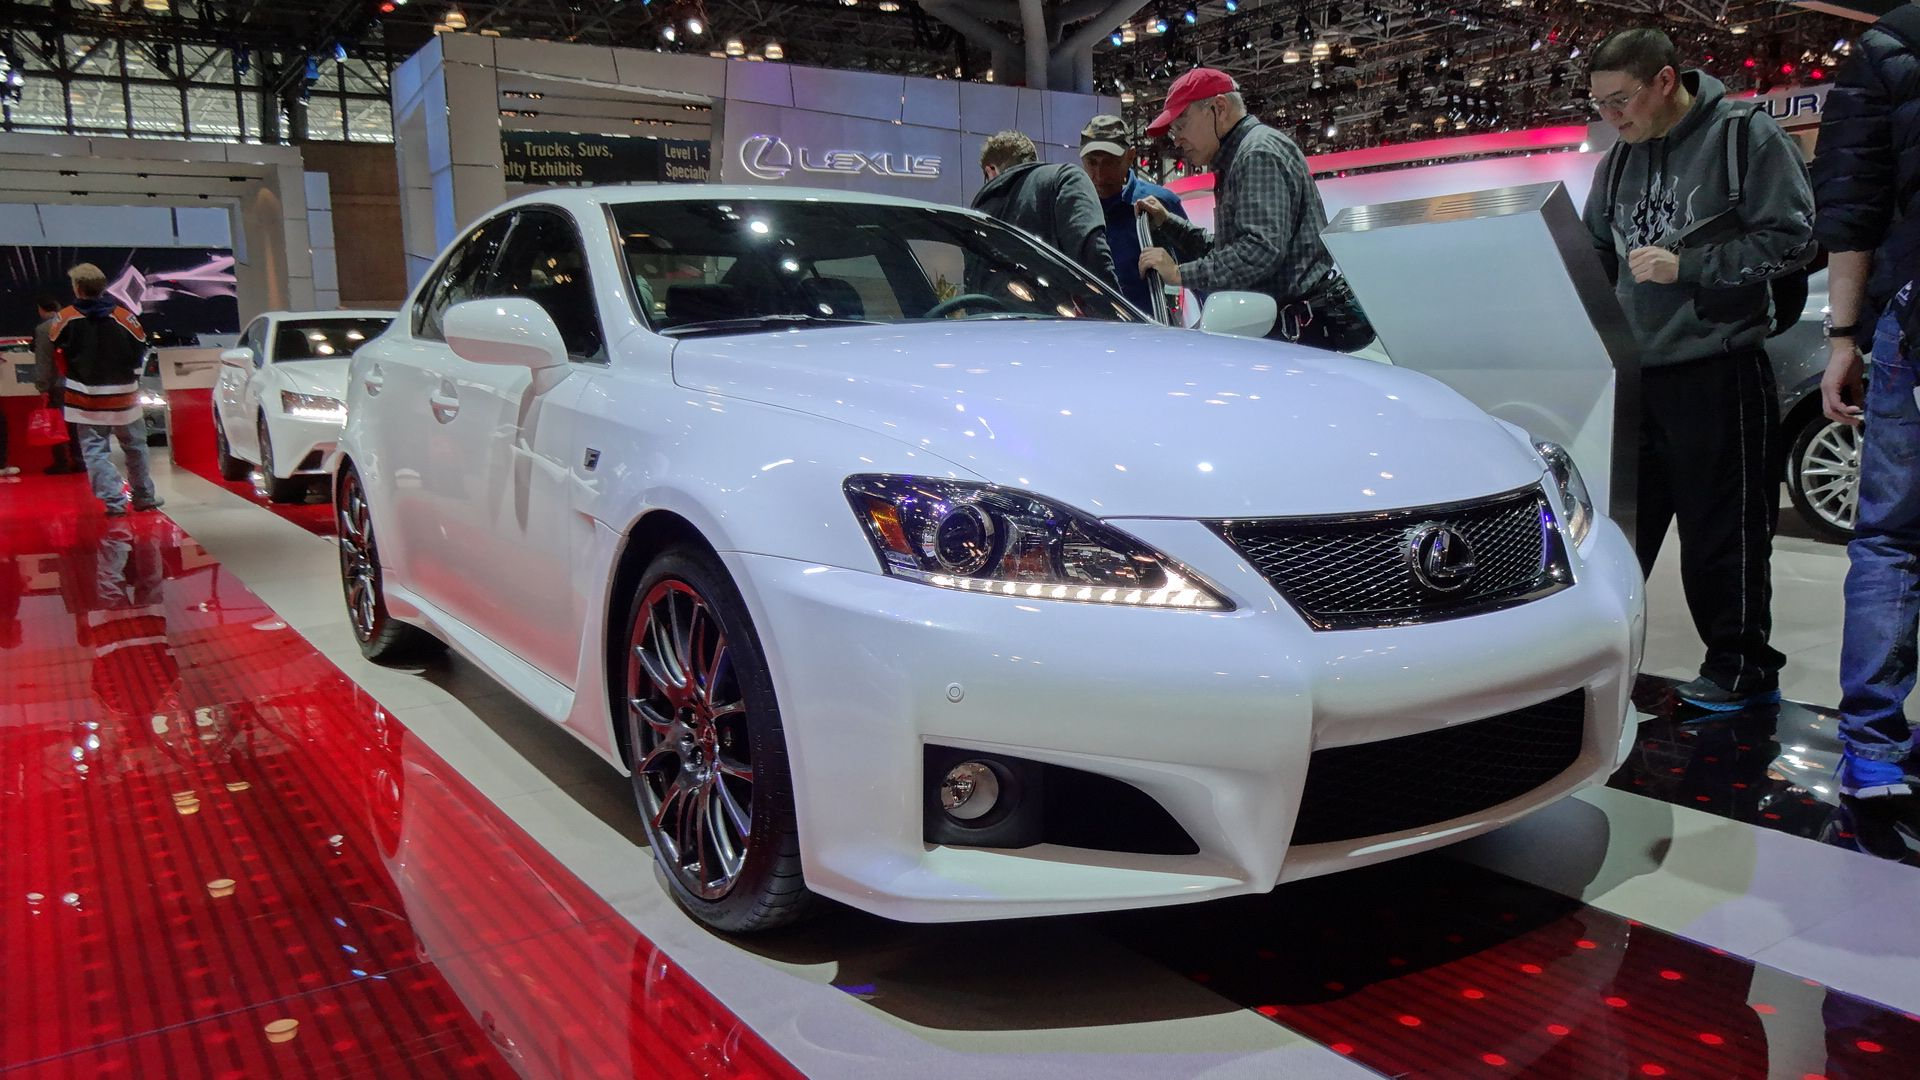 85ed4195c97fef17e9090ac451a34f19 Great Description About 2012 Lexus Es with Fascinating Images Cars Review